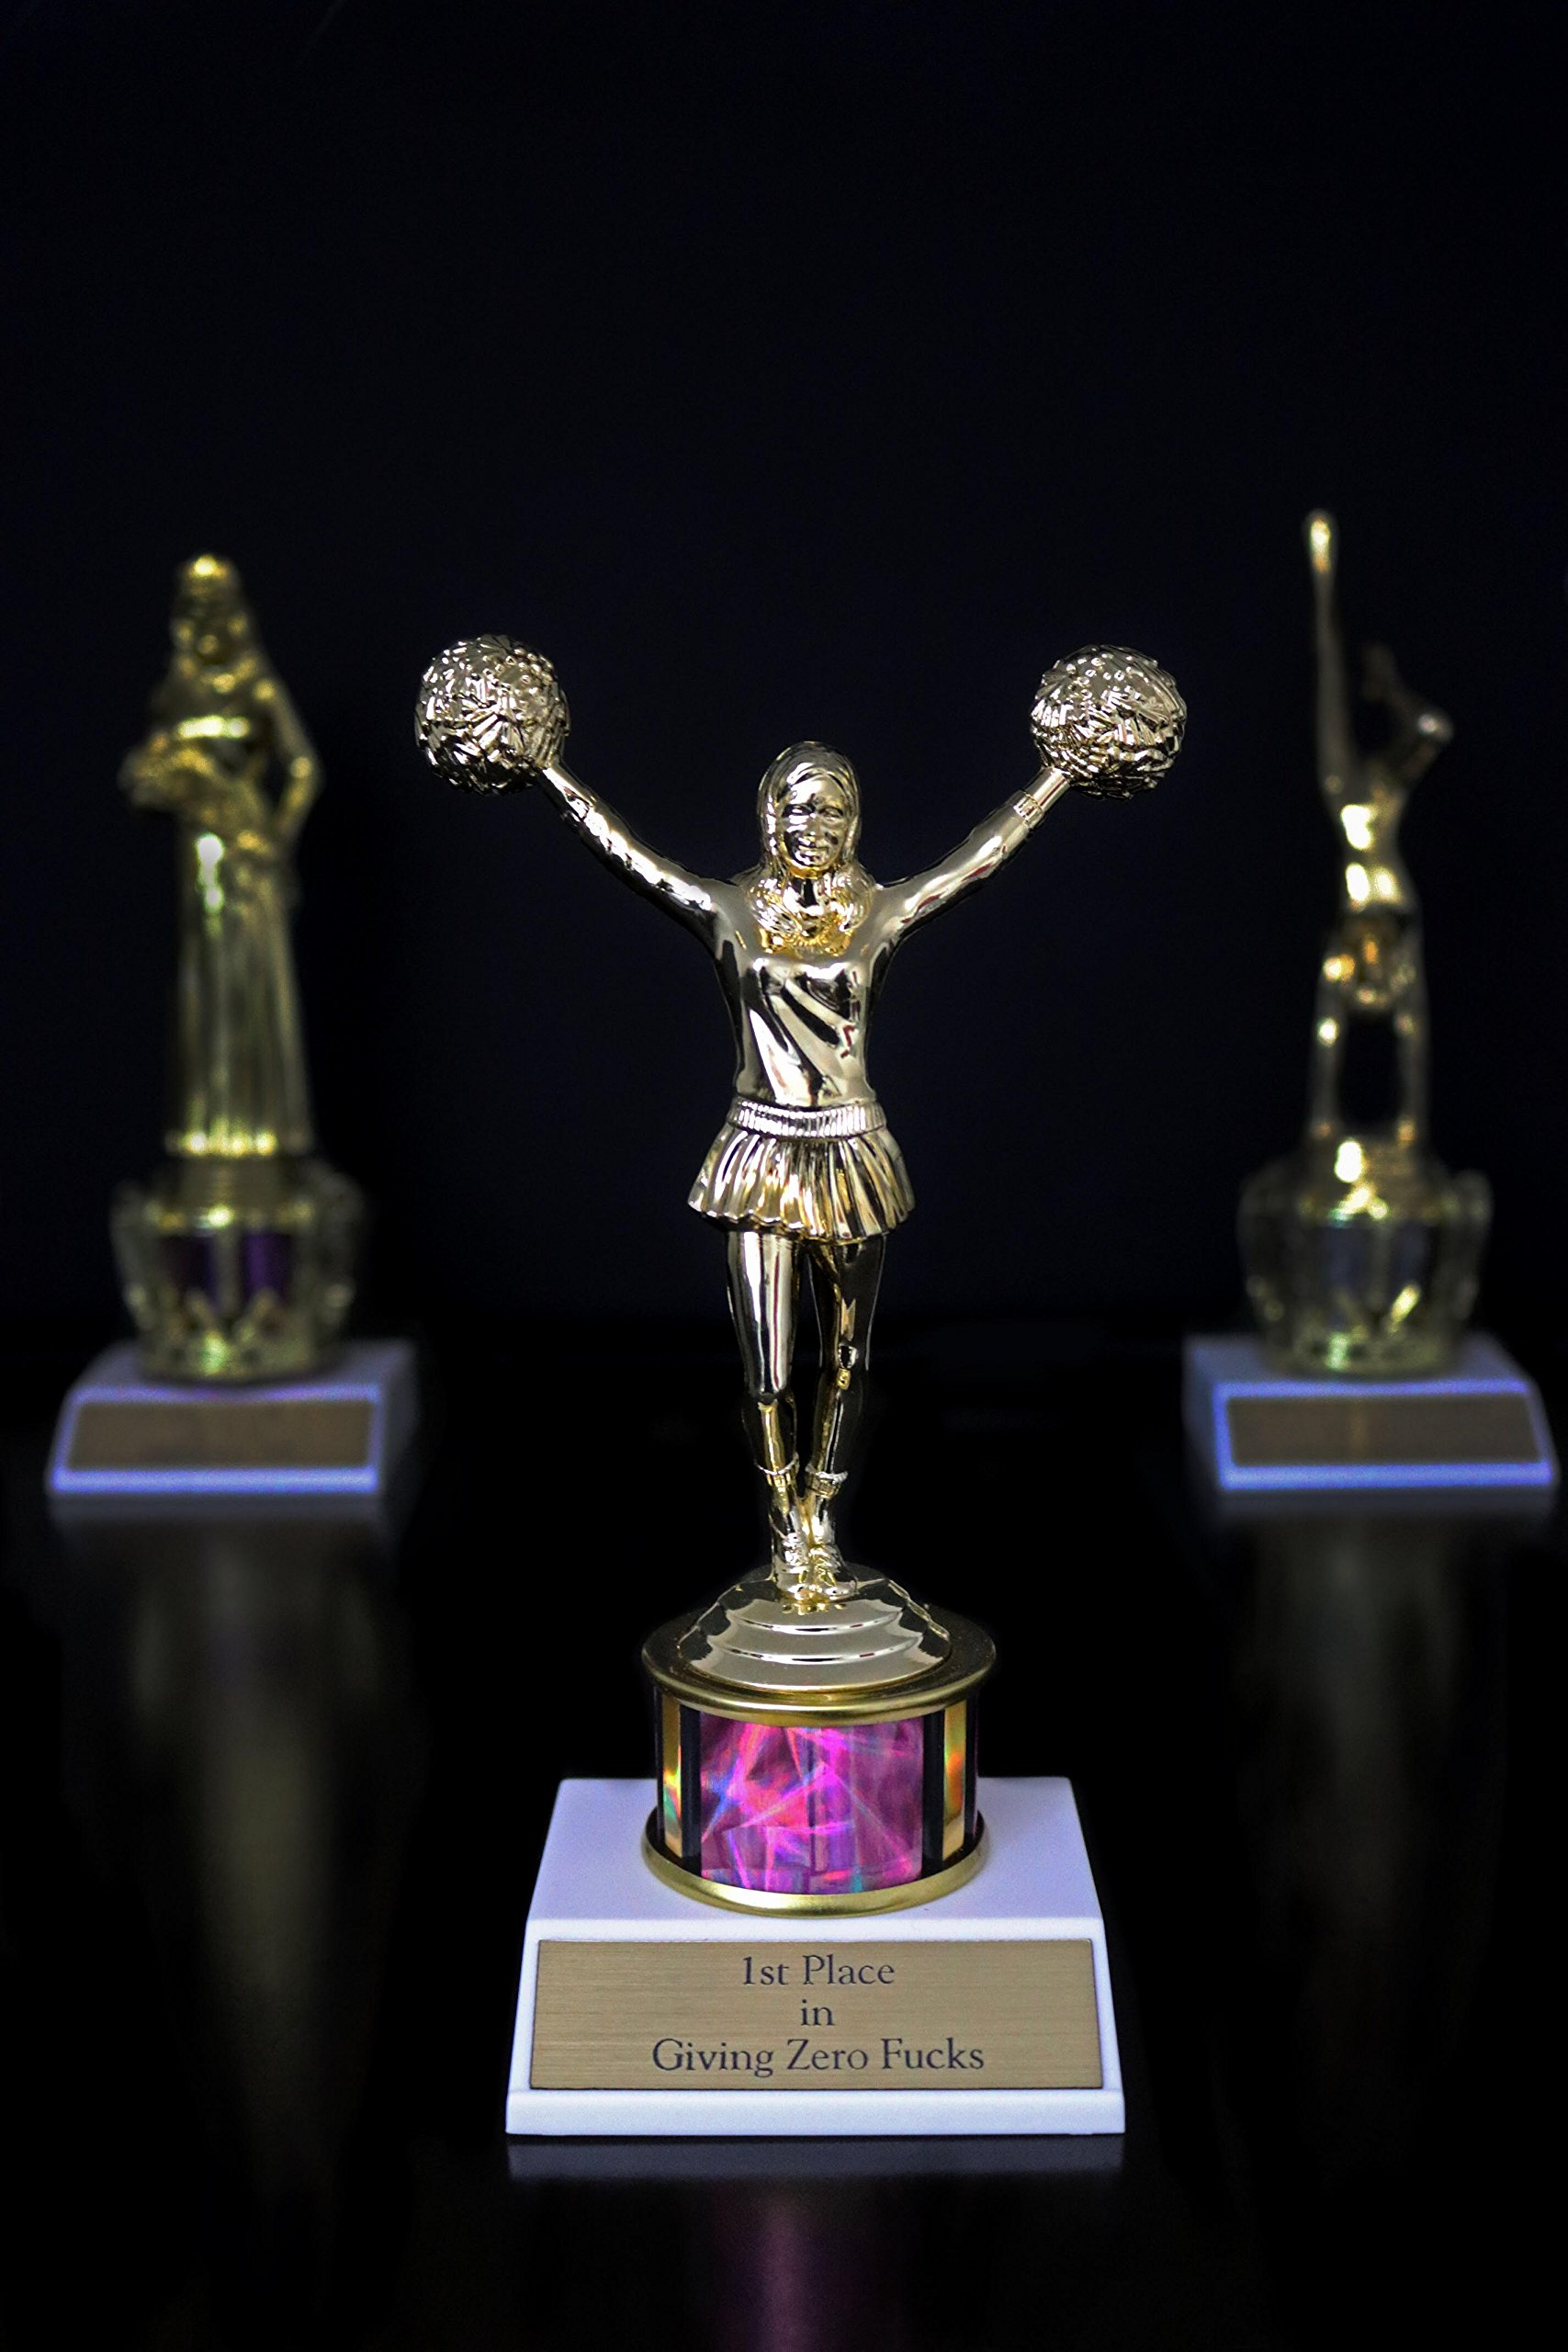 1st Place in Giving Zero Fcks Woman Trophy funny in gold and holographic pink with cheerleader cheerleading statuette by Get Bullish (Image #5)